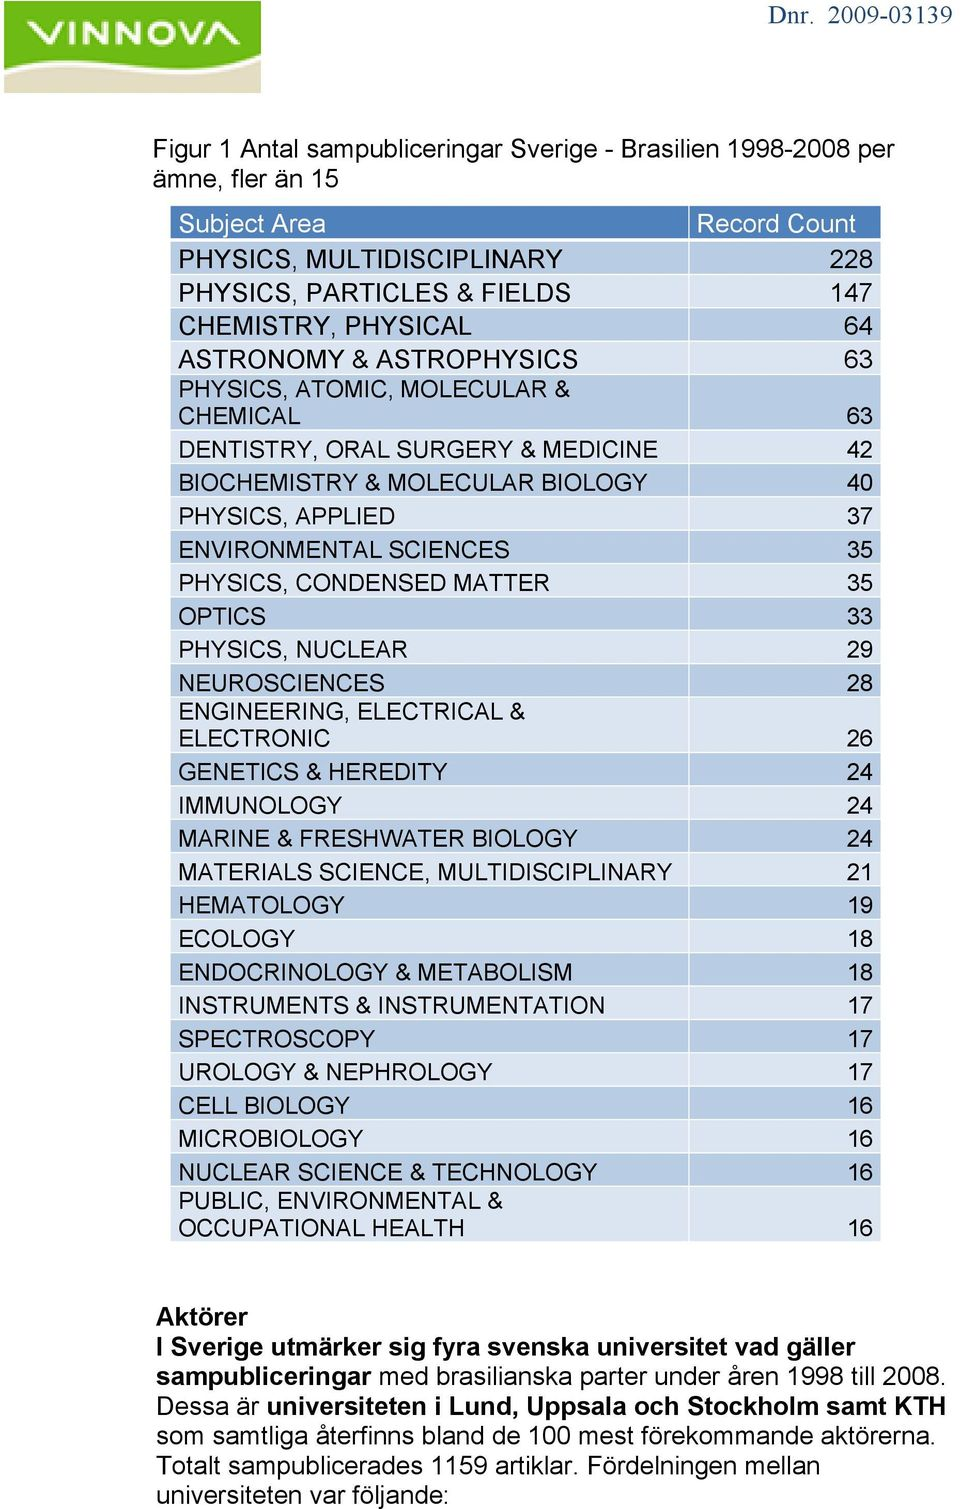 CONDENSED MATTER 35 OPTICS 33 PHYSICS, NUCLEAR 29 NEUROSCIENCES 28 ENGINEERING, ELECTRICAL & ELECTRONIC 26 GENETICS & HEREDITY 24 IMMUNOLOGY 24 MARINE & FRESHWATER BIOLOGY 24 MATERIALS SCIENCE,